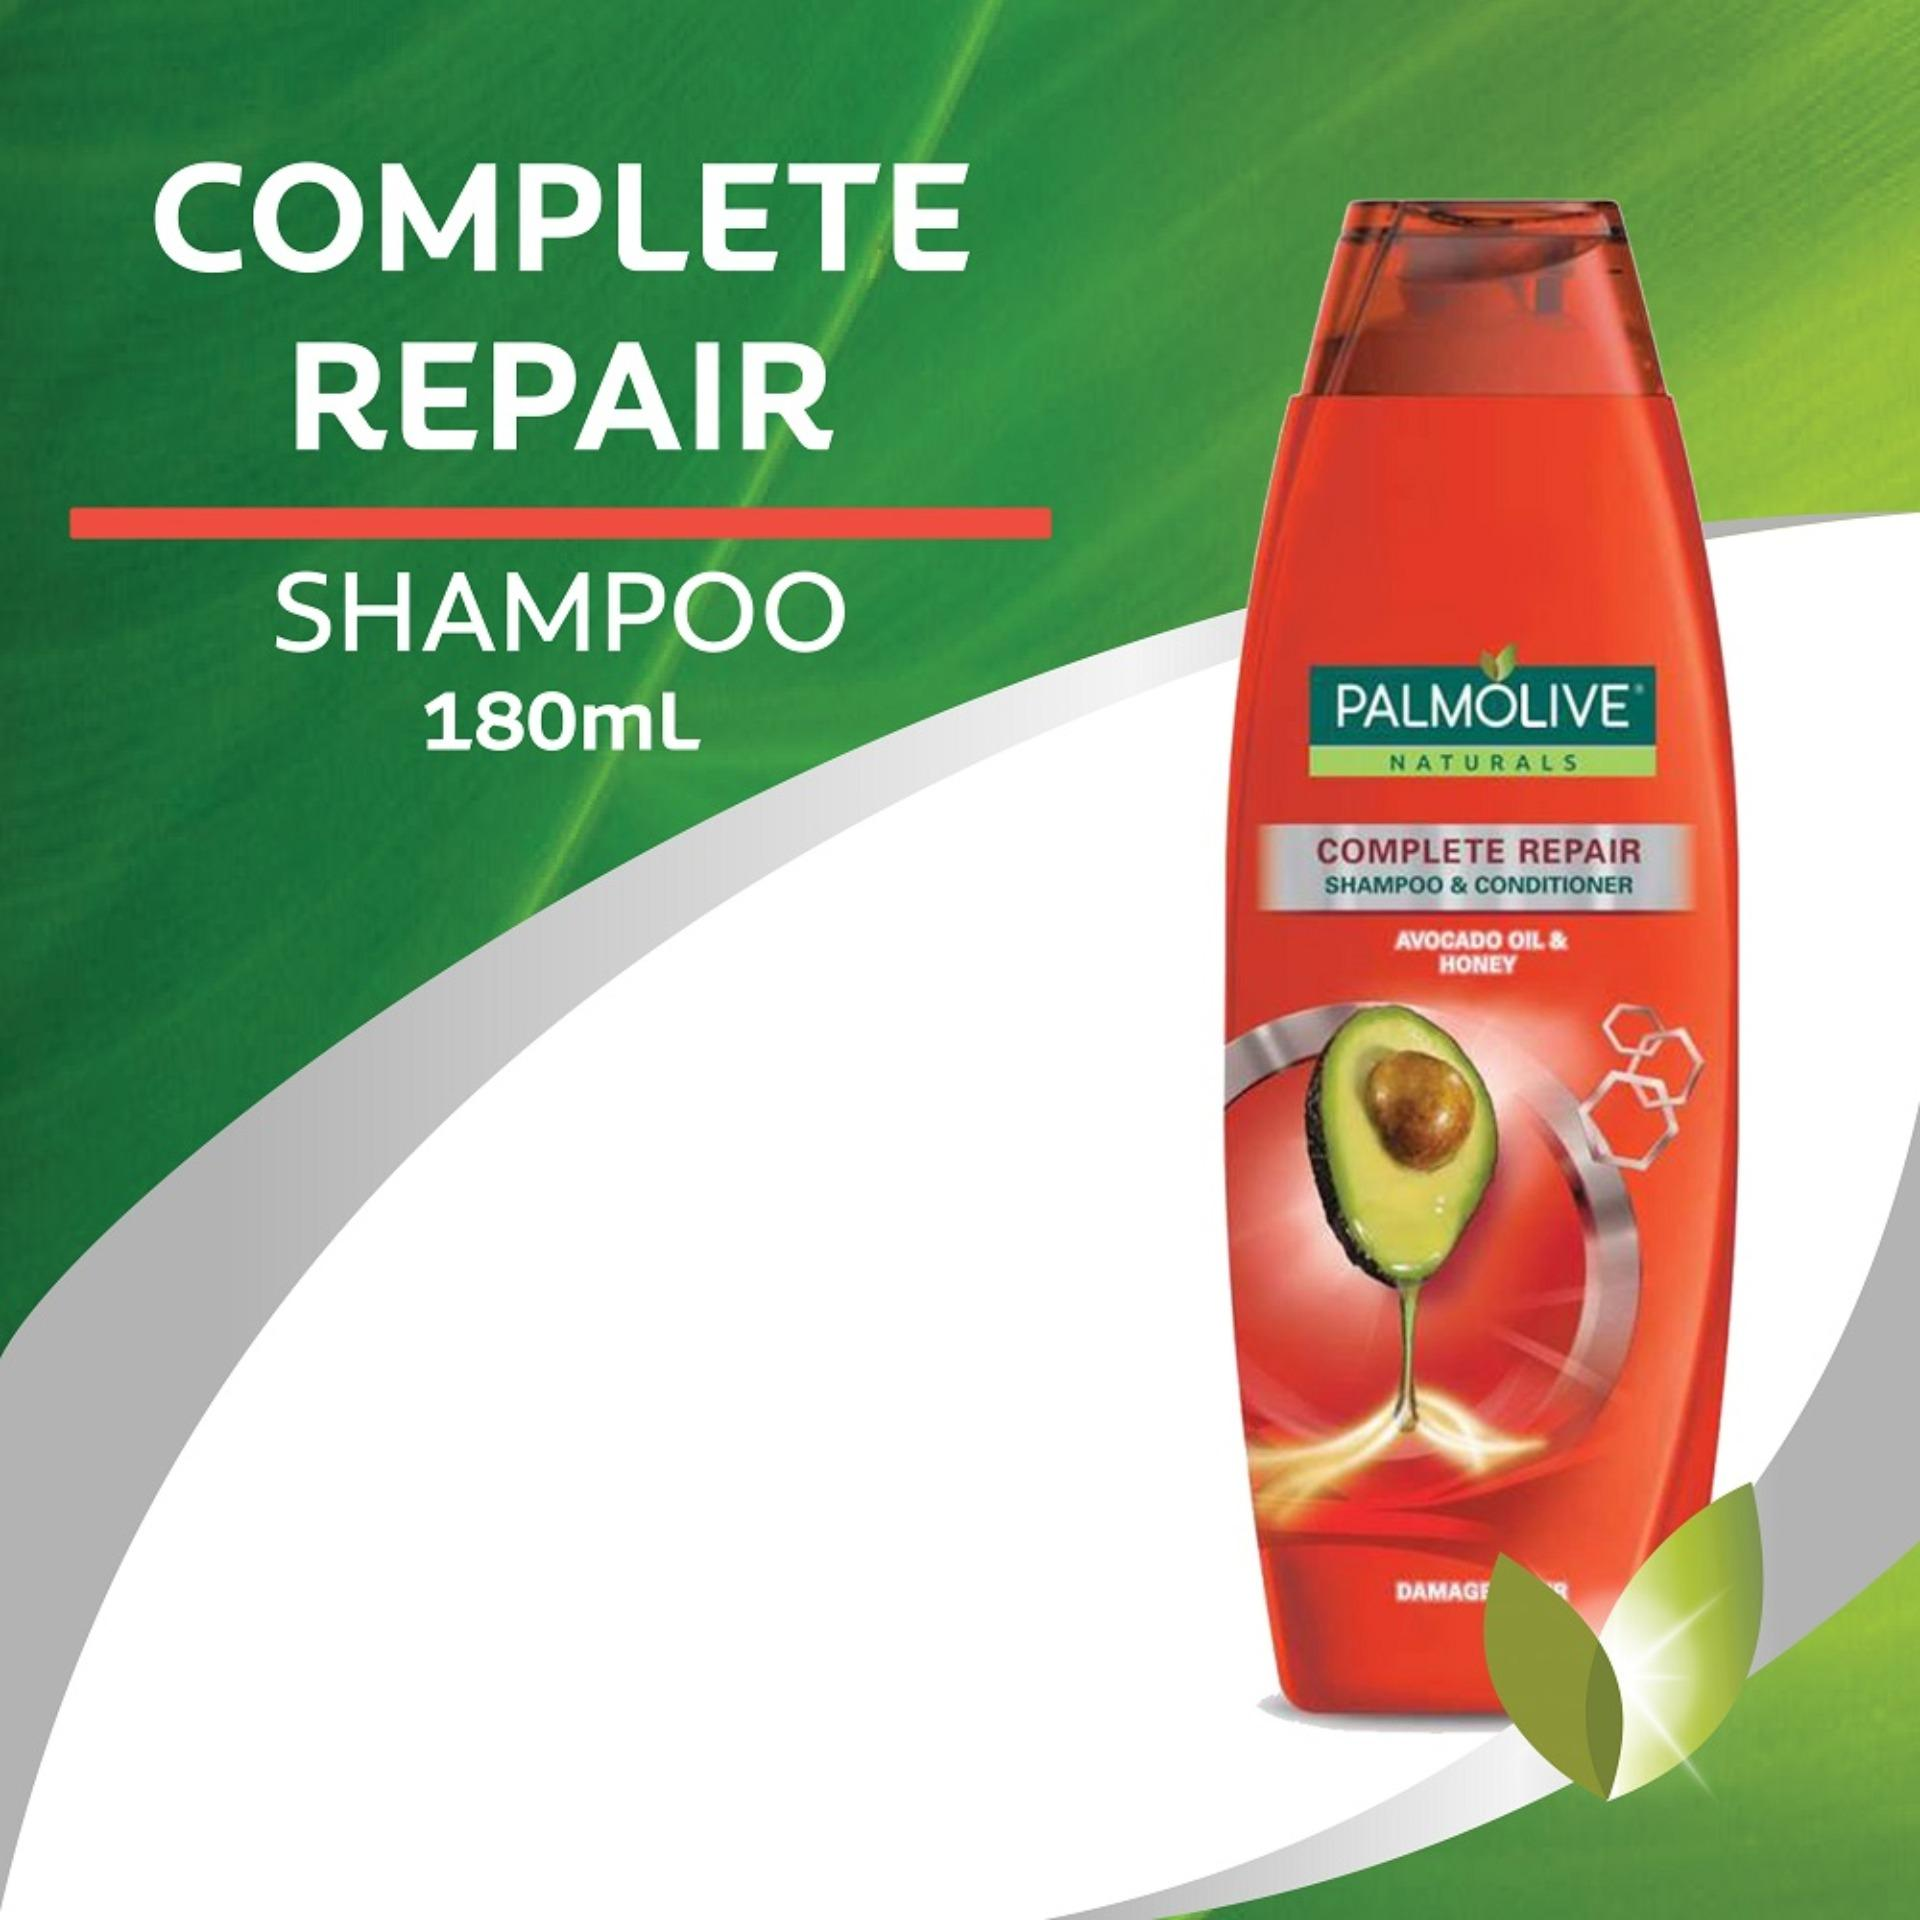 Philippines Best Buy Hair Care It 30 06 2018 Clear Shampoo New Complete Soft 170ml Palmolive Naturals Repair Damaged 180ml